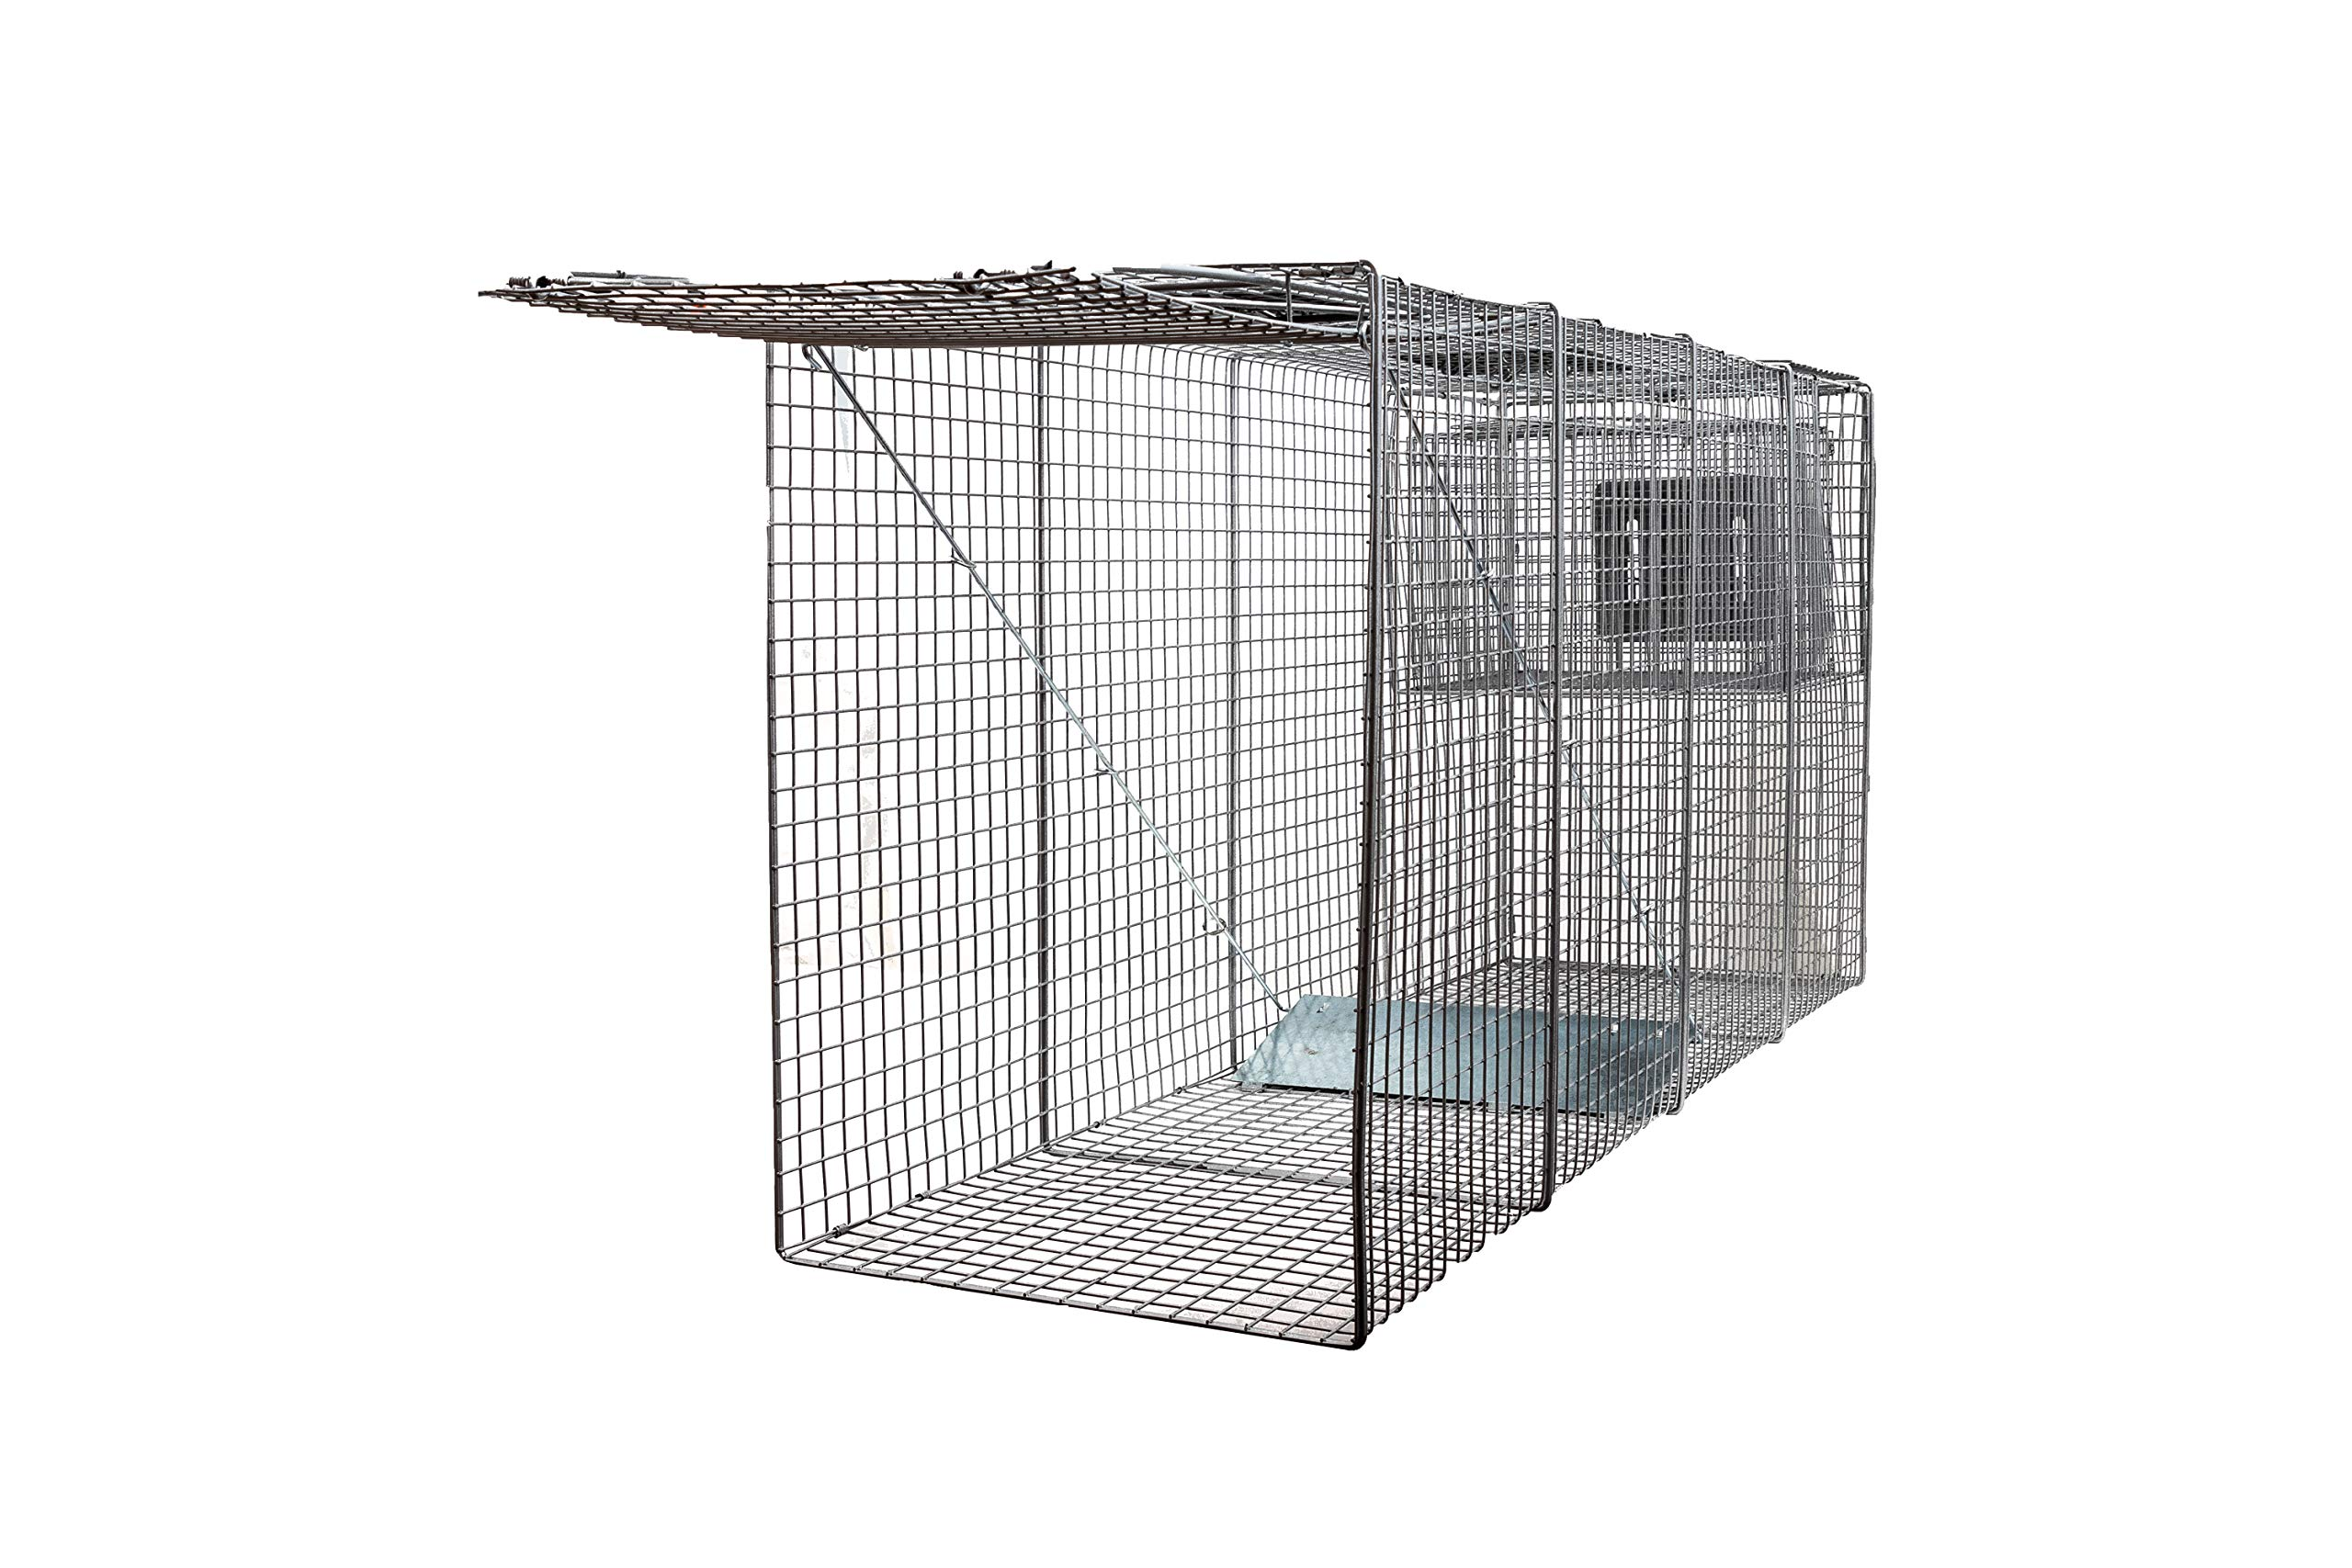 X-Large One Door Catch Release Heavy Duty Cage Live Animal Trap for Large Dogs, Foxes, Coyotes and Other Similar Sized Animals, 58''x26''x17''